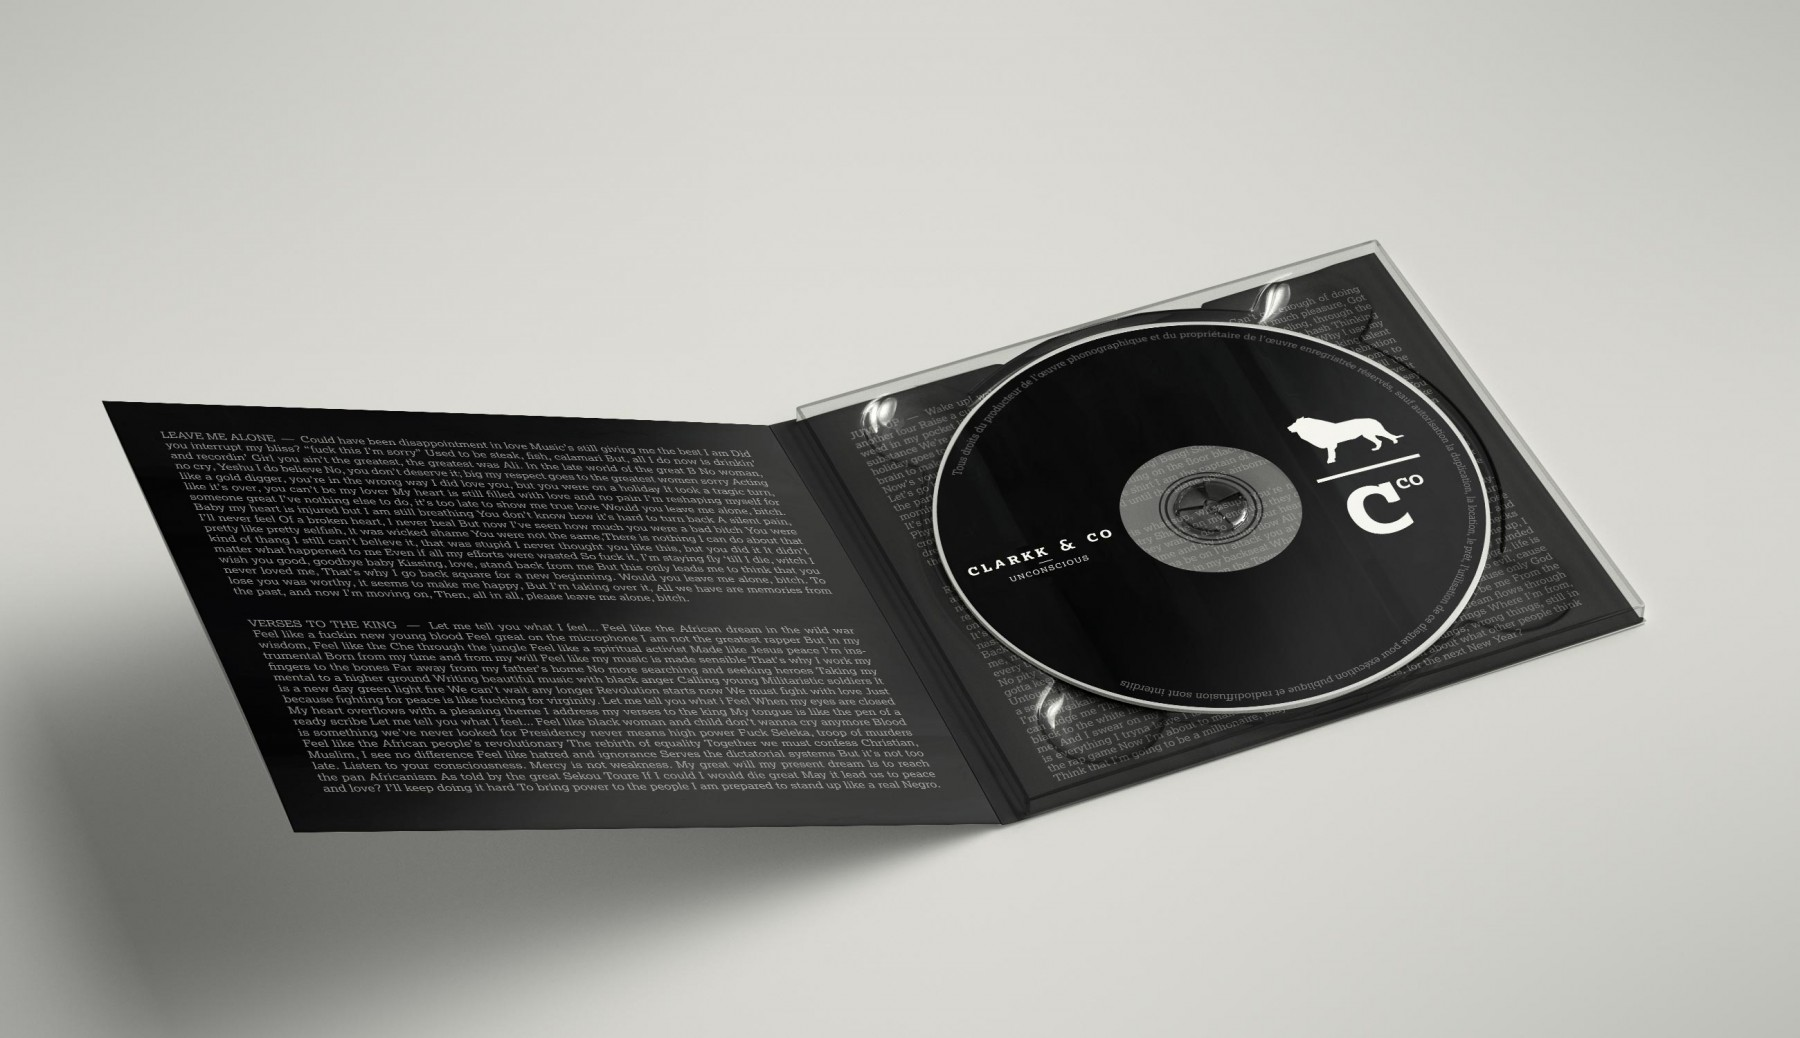 Album Digipack Leaflet